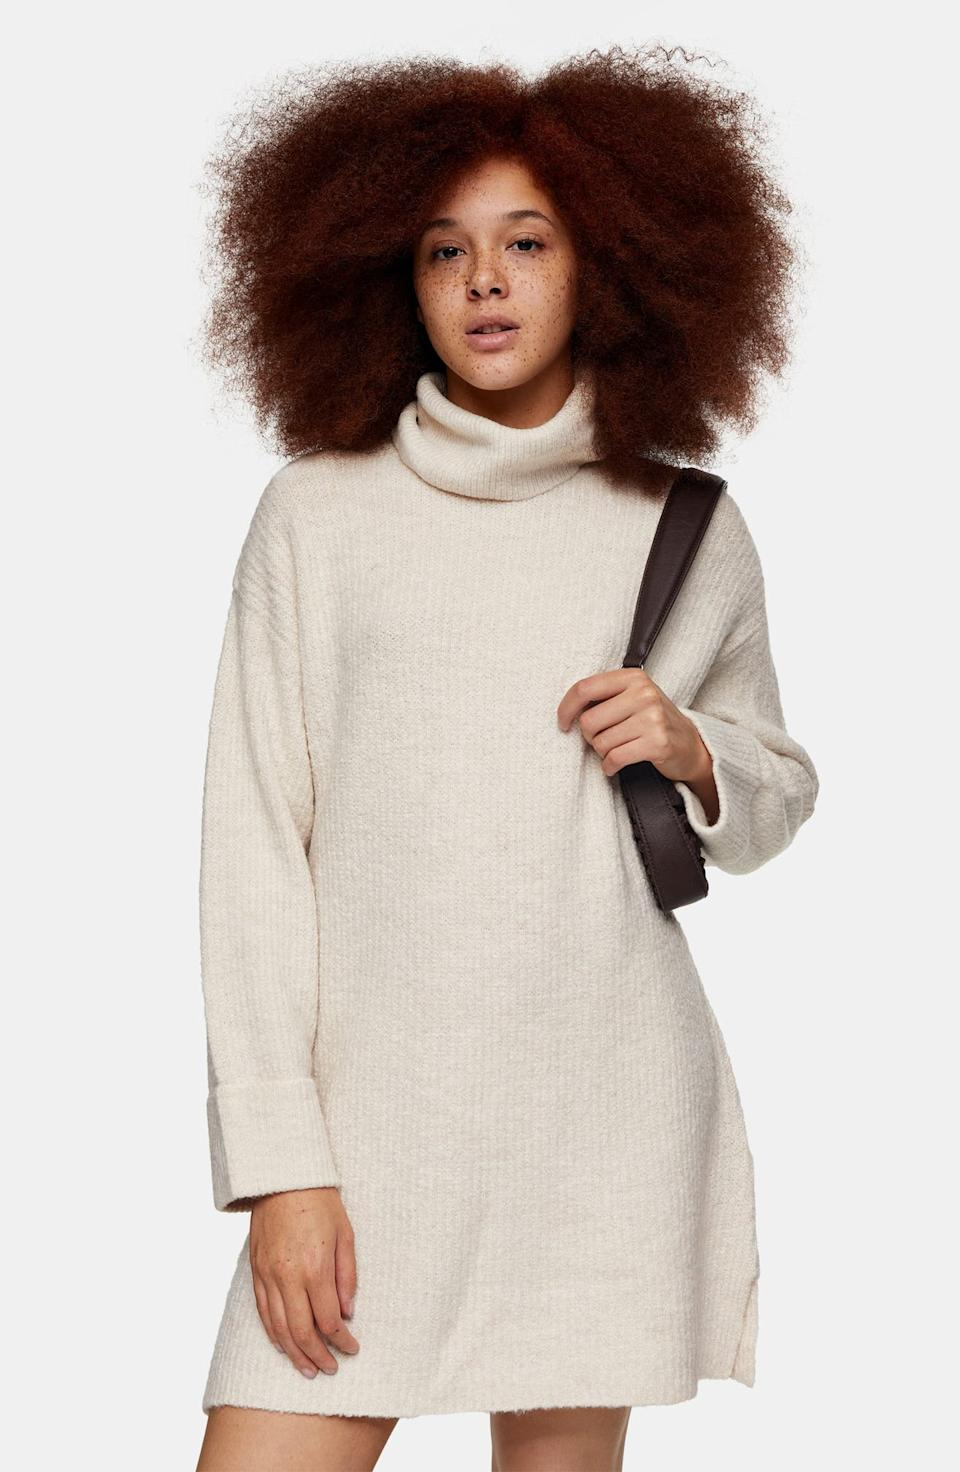 Topshop Funnel Neck Sweater Dress. Image via Nordstrom.